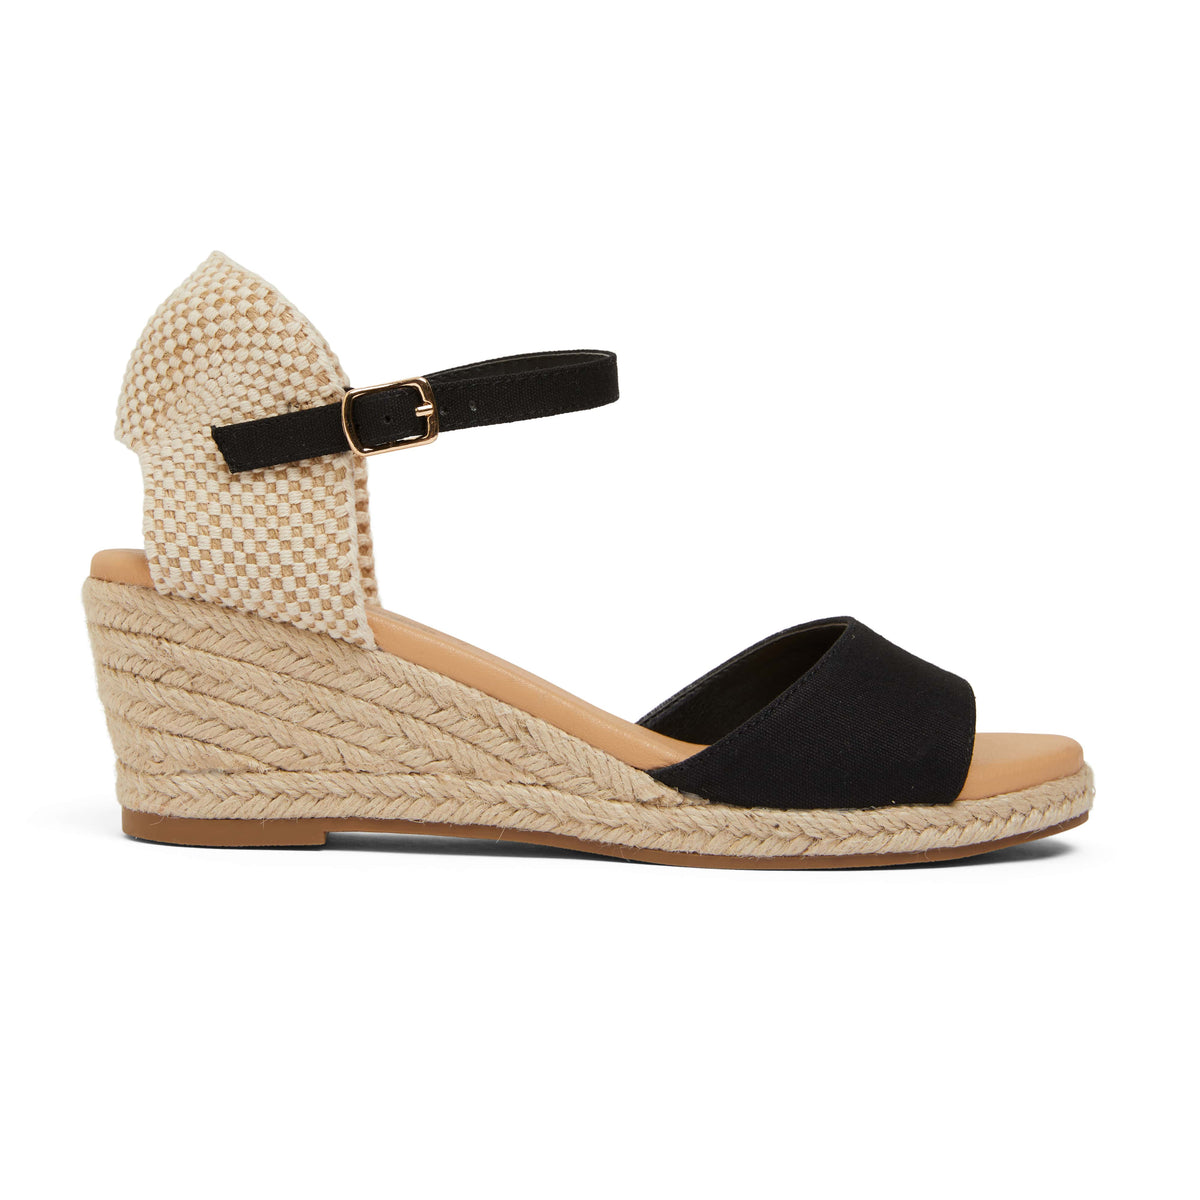 Scout Espadrille in Black Fabric